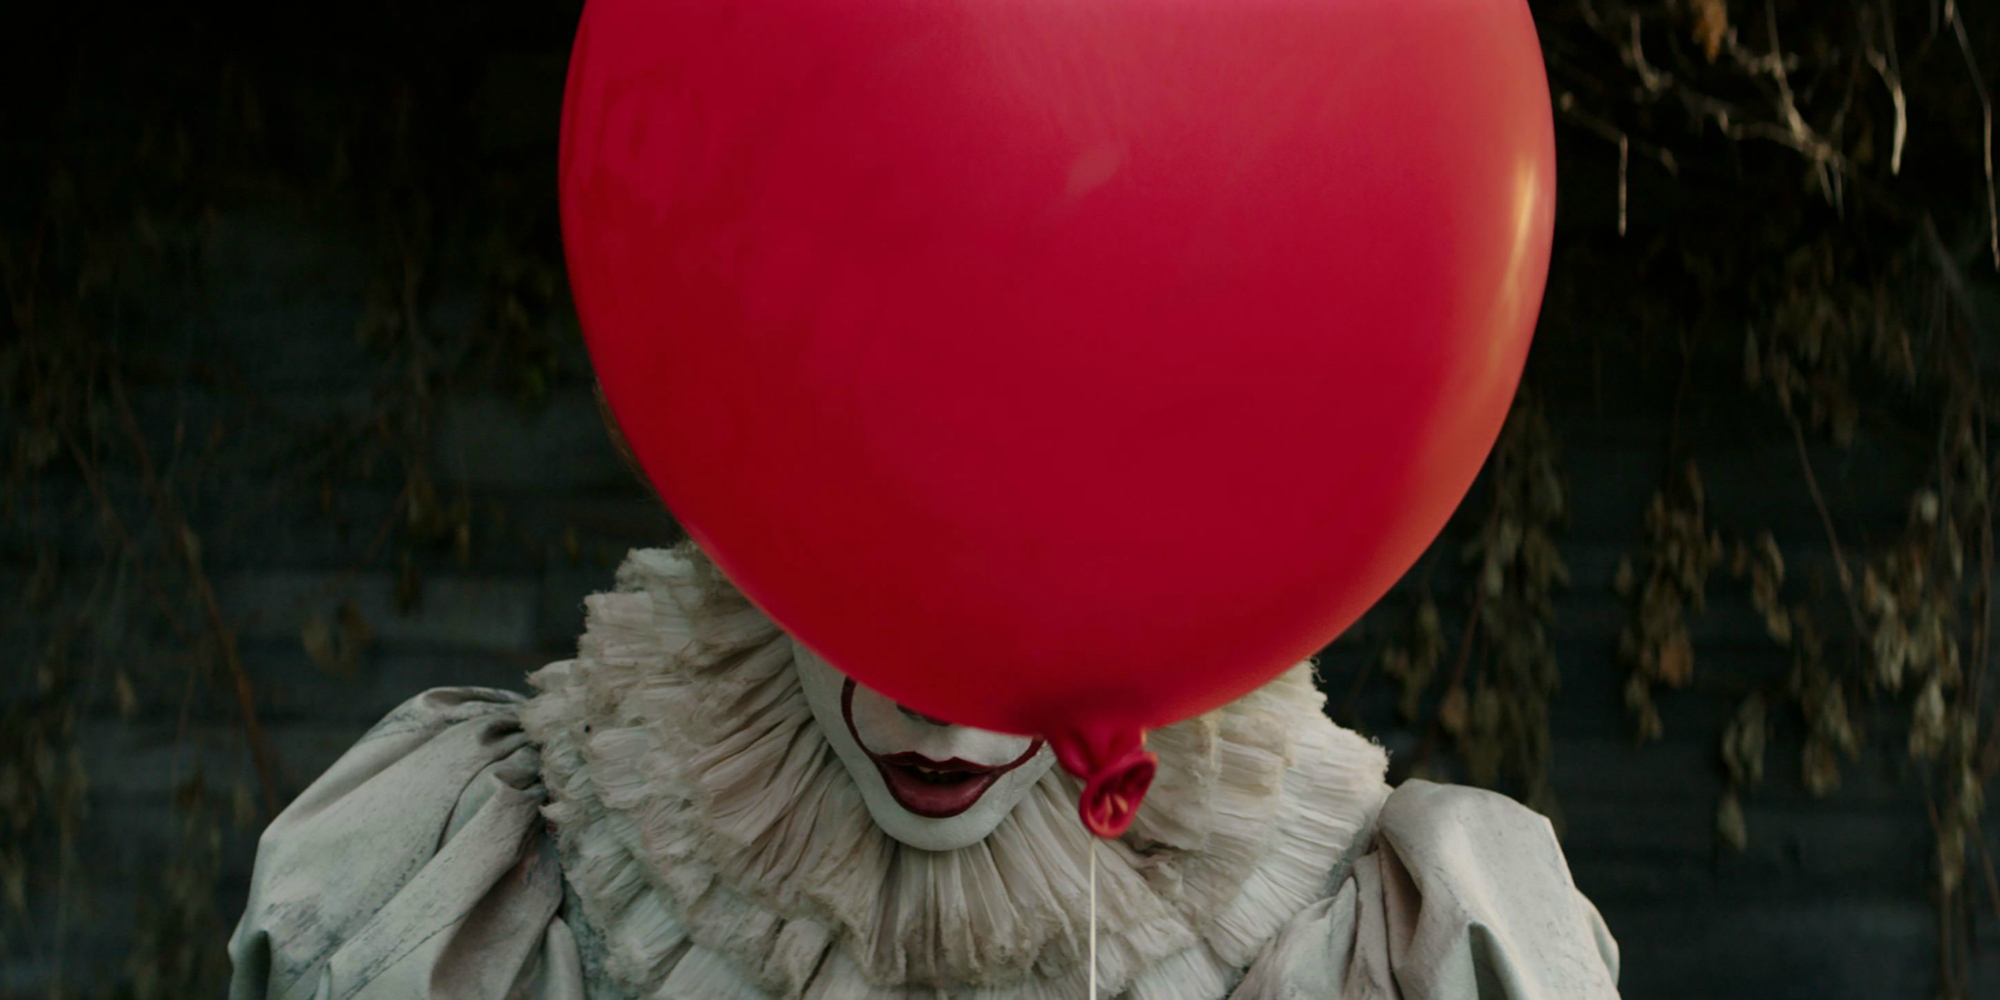 IT 2017 Pennywise Balloon Image